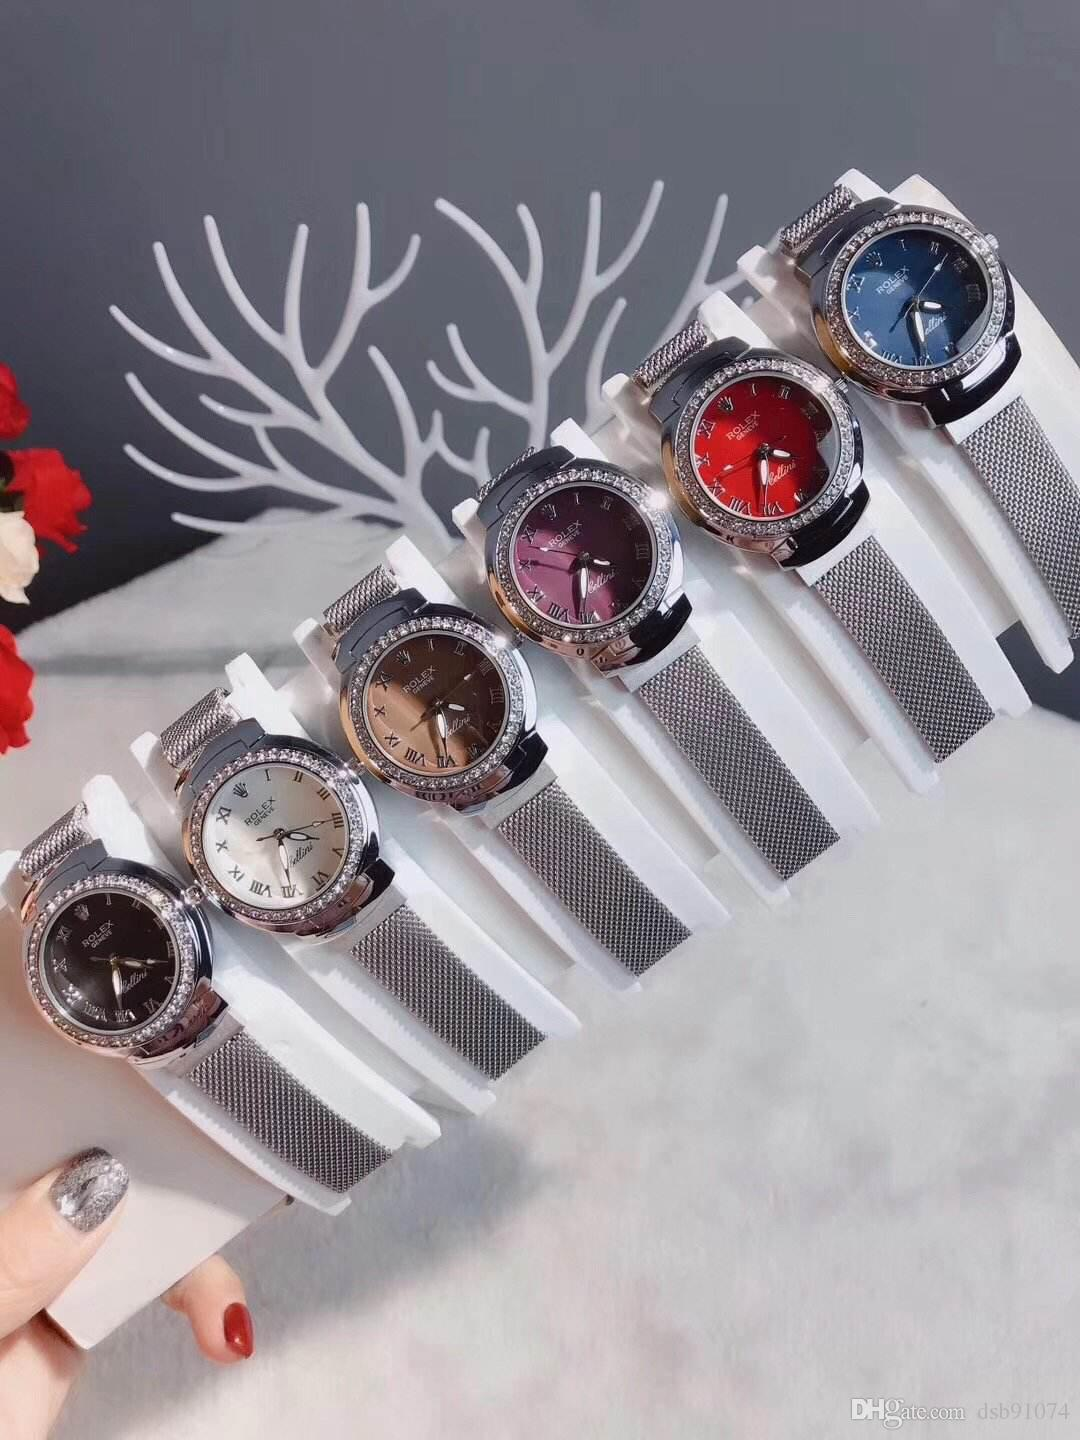 Fashion Roman Numeral Crystal Business Women's Watch High Quality Stainless Steel Strap Waterproof Multicolor Dial Quartz Watch